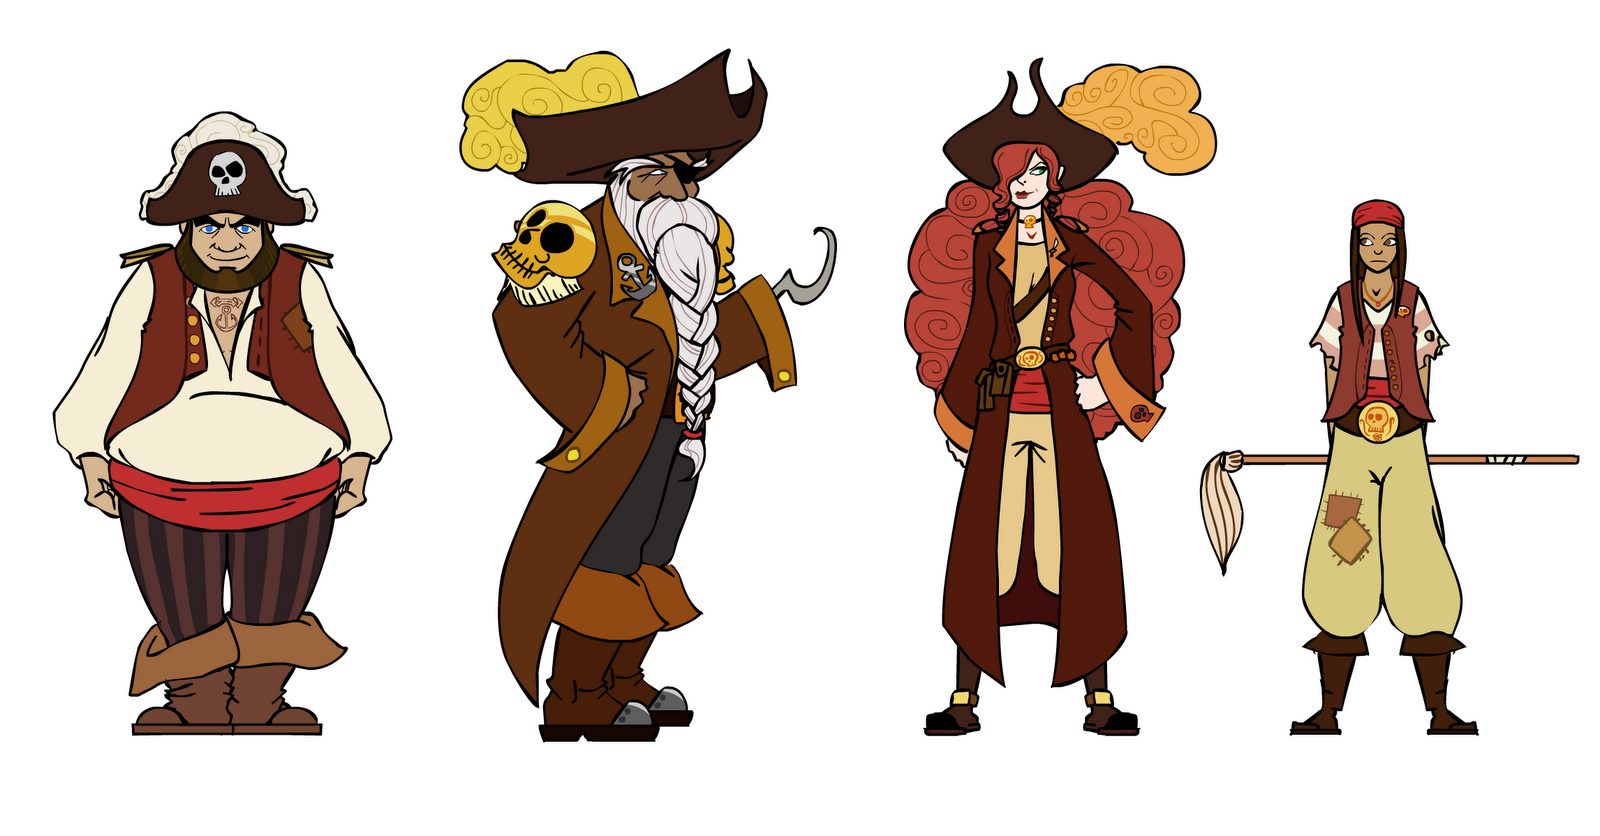 James McVann: Pirate concept art